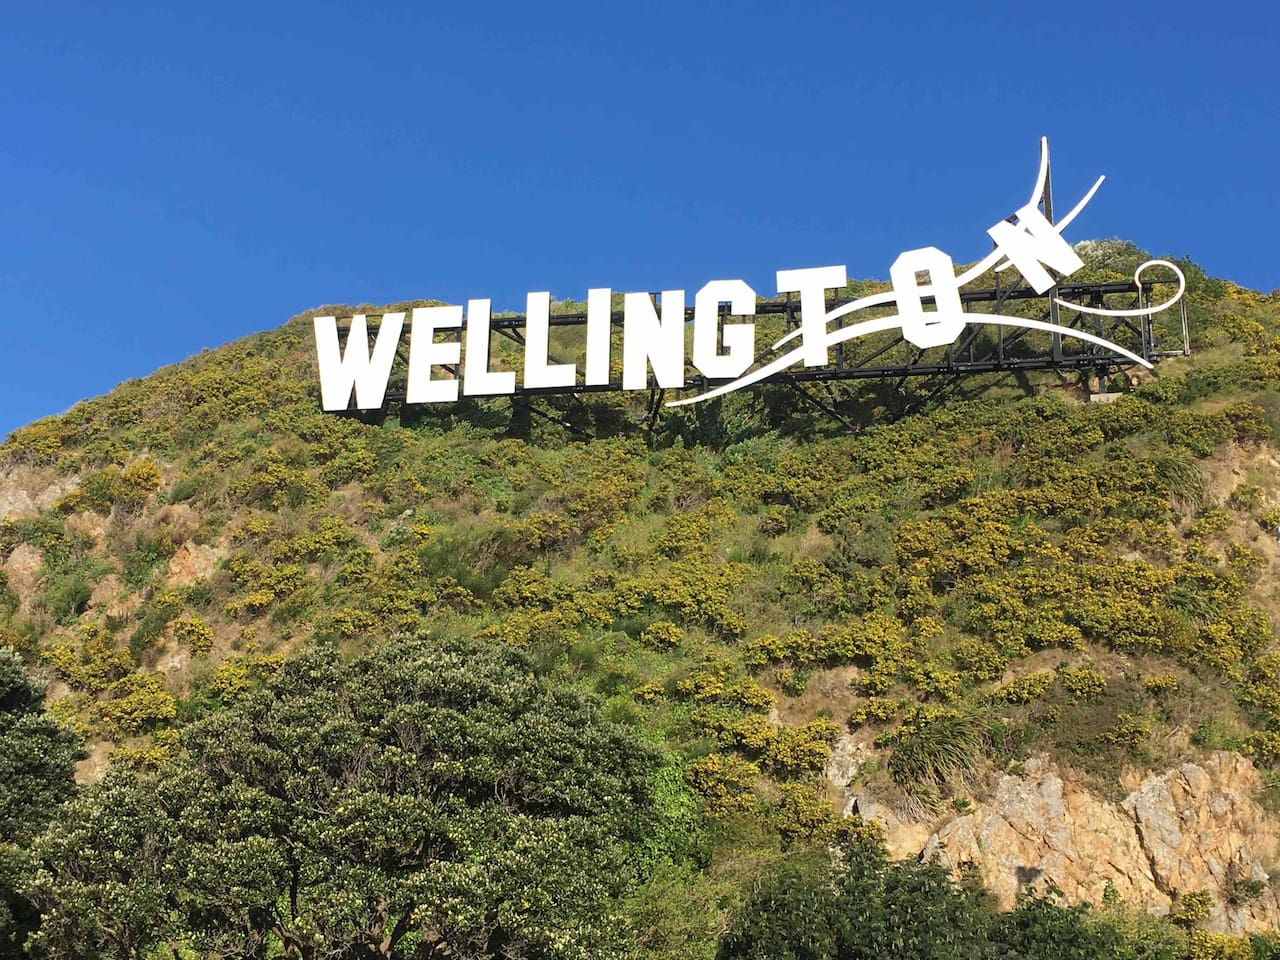 """Just ten minutes from the famous """"Welly-wood"""" sign on the hill, close to cafes, bars and restaurants and some of the most stunning views in Wellington!"""